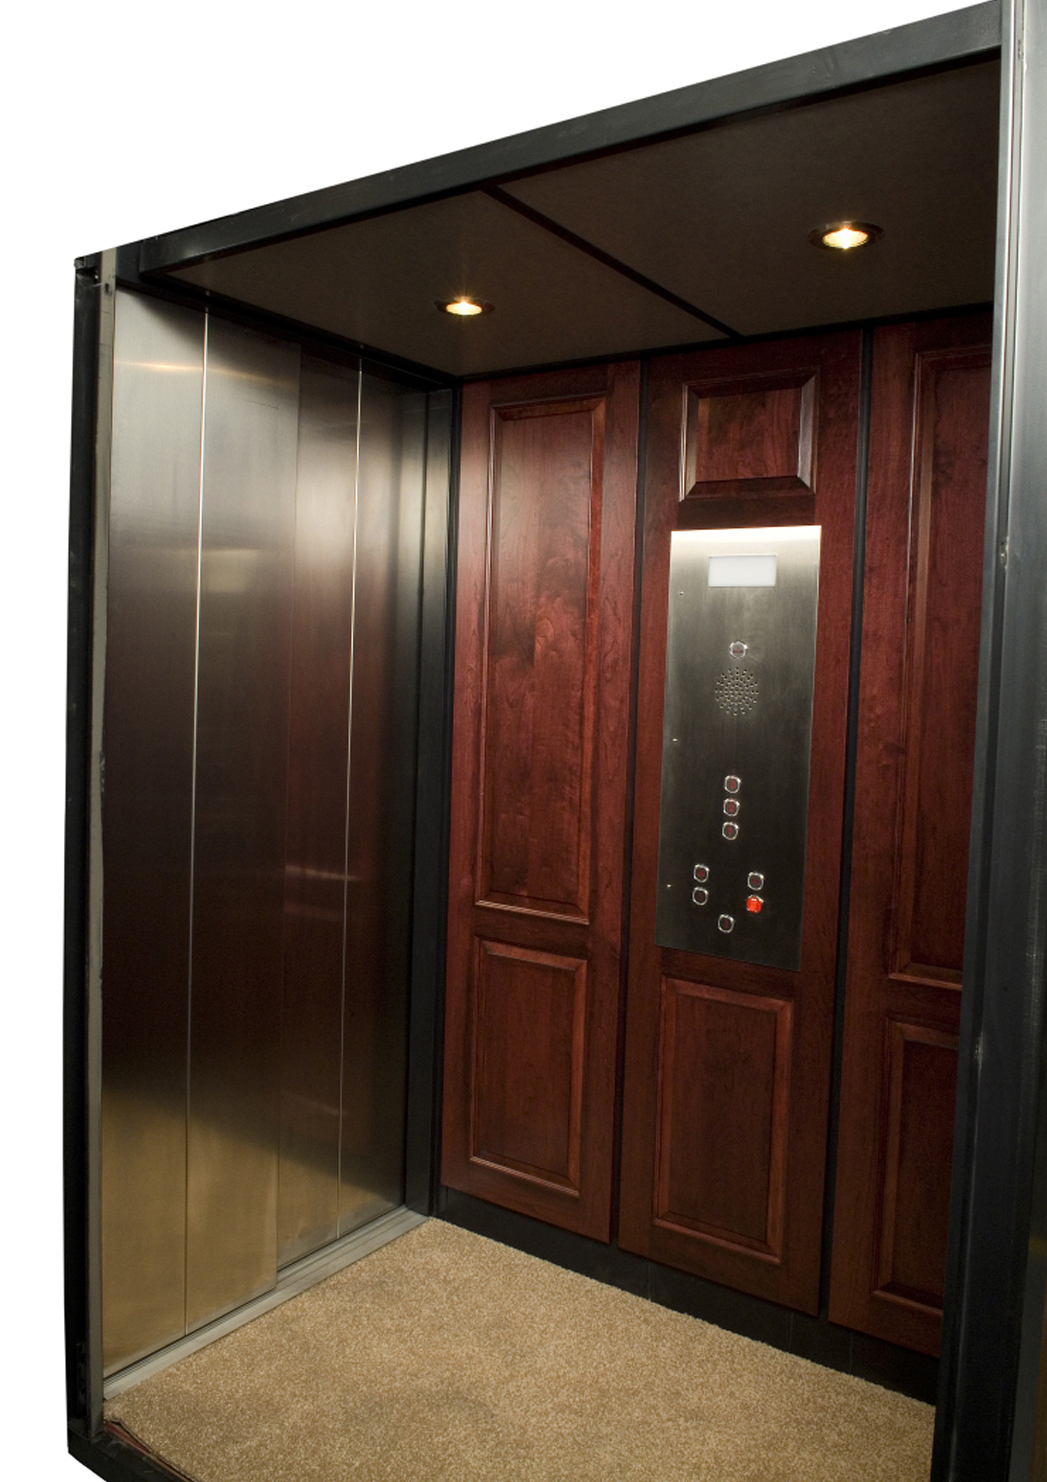 Vertechs Announces A New Home Elevator Built To Industrial